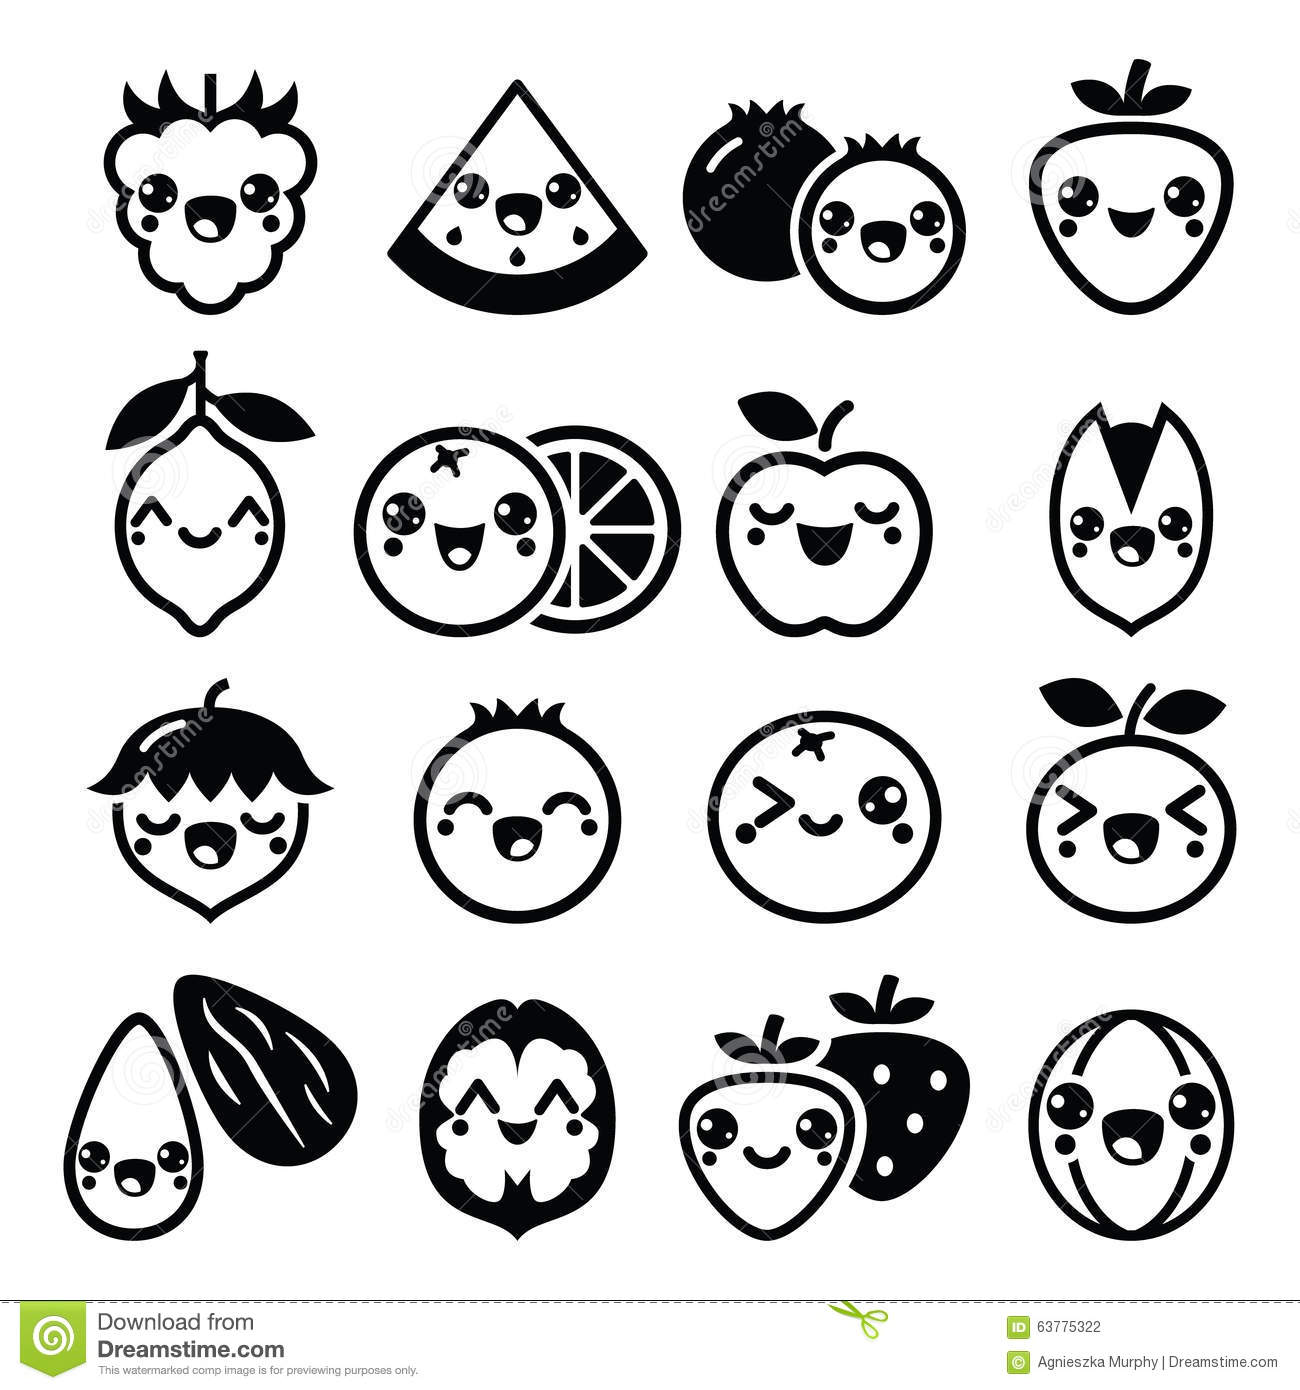 Butterfly Rose 39205975 additionally Fox Clipart Black And White 28884 also Thing 716495 additionally Elephantbell additionally Stock Illustration Kawaii Fruit Nuts Cute Characters Design Vector Icons Set Japanese Black White Image63775322. on owl drawings